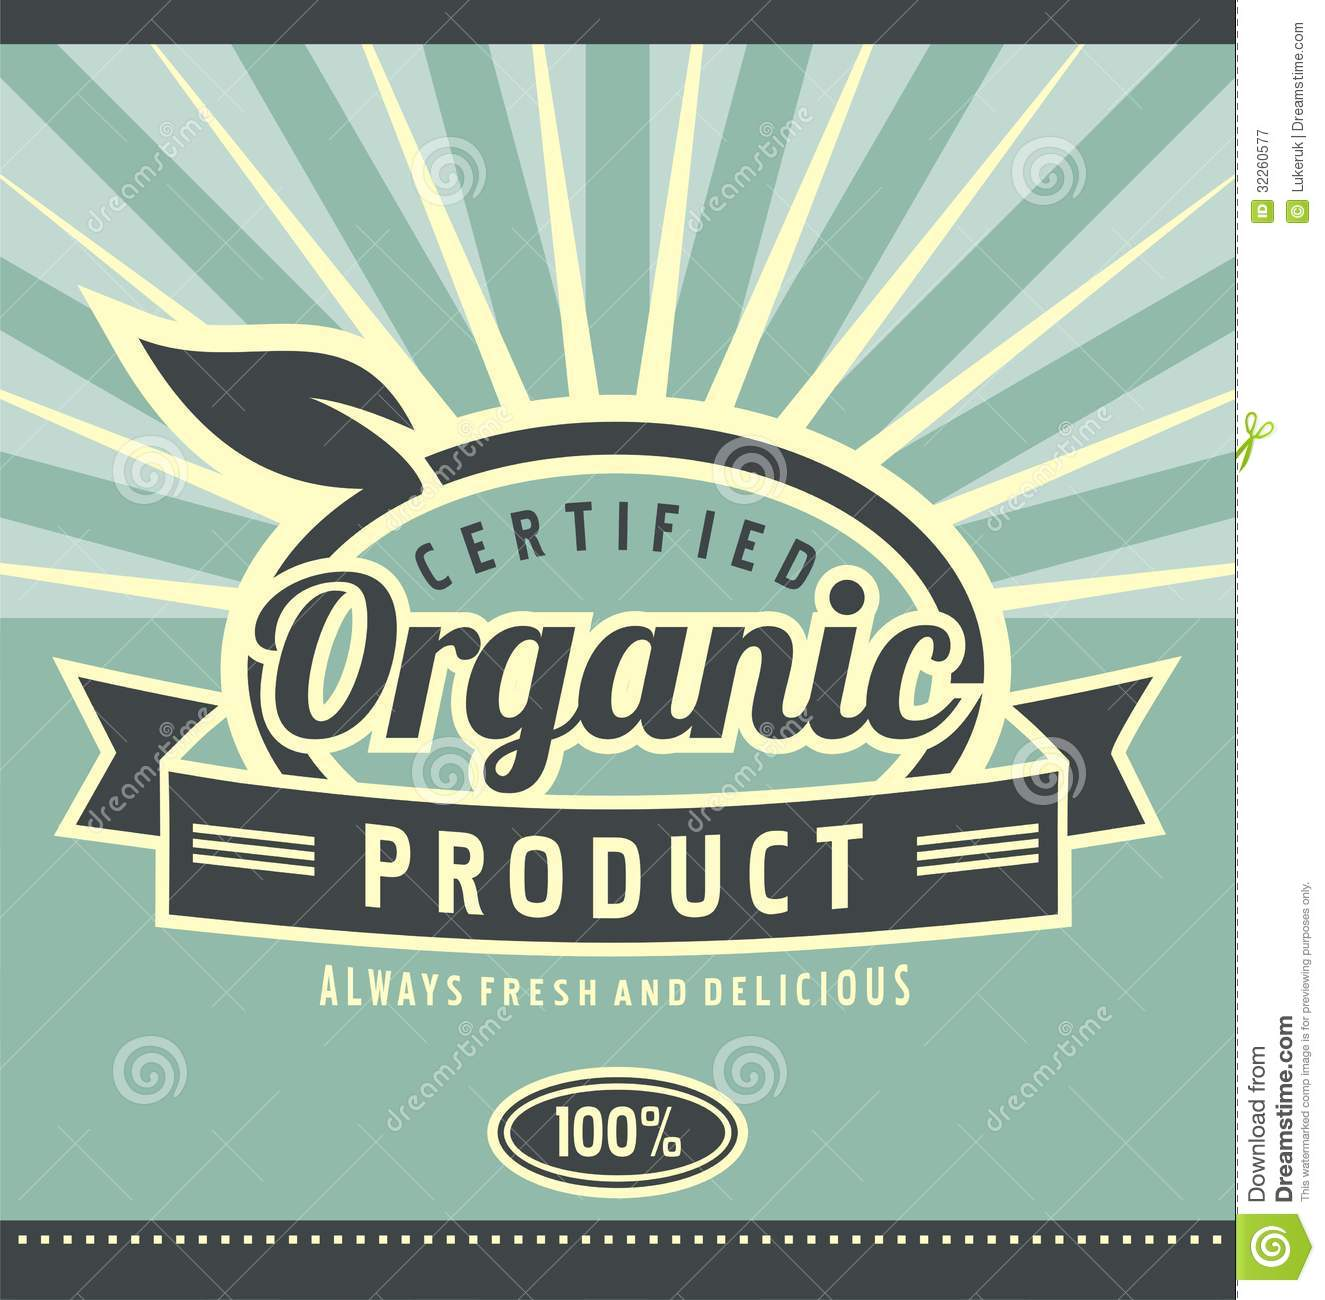 vintage organic product poster design stock vector - illustration of